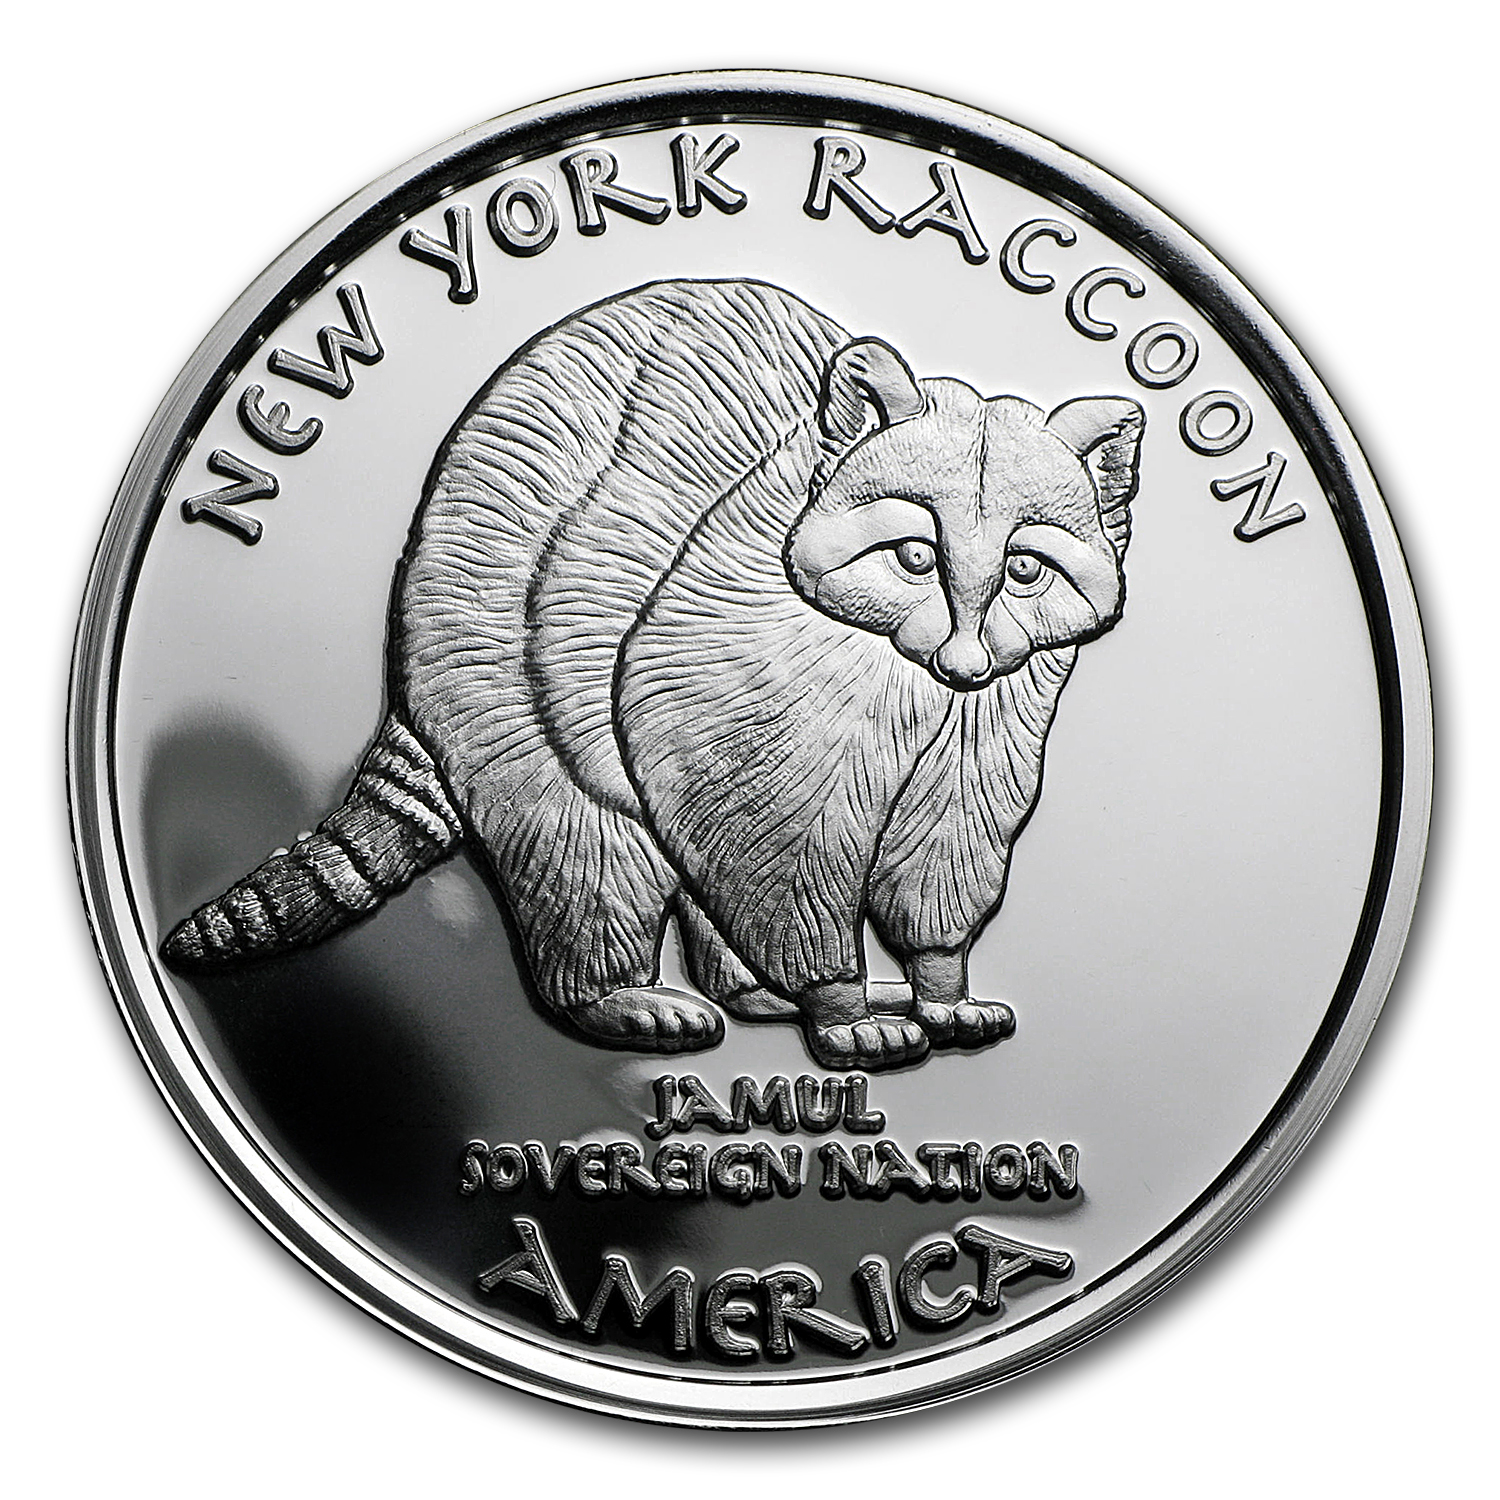 2016 1 oz Silver Proof State Dollars New York Mohawk